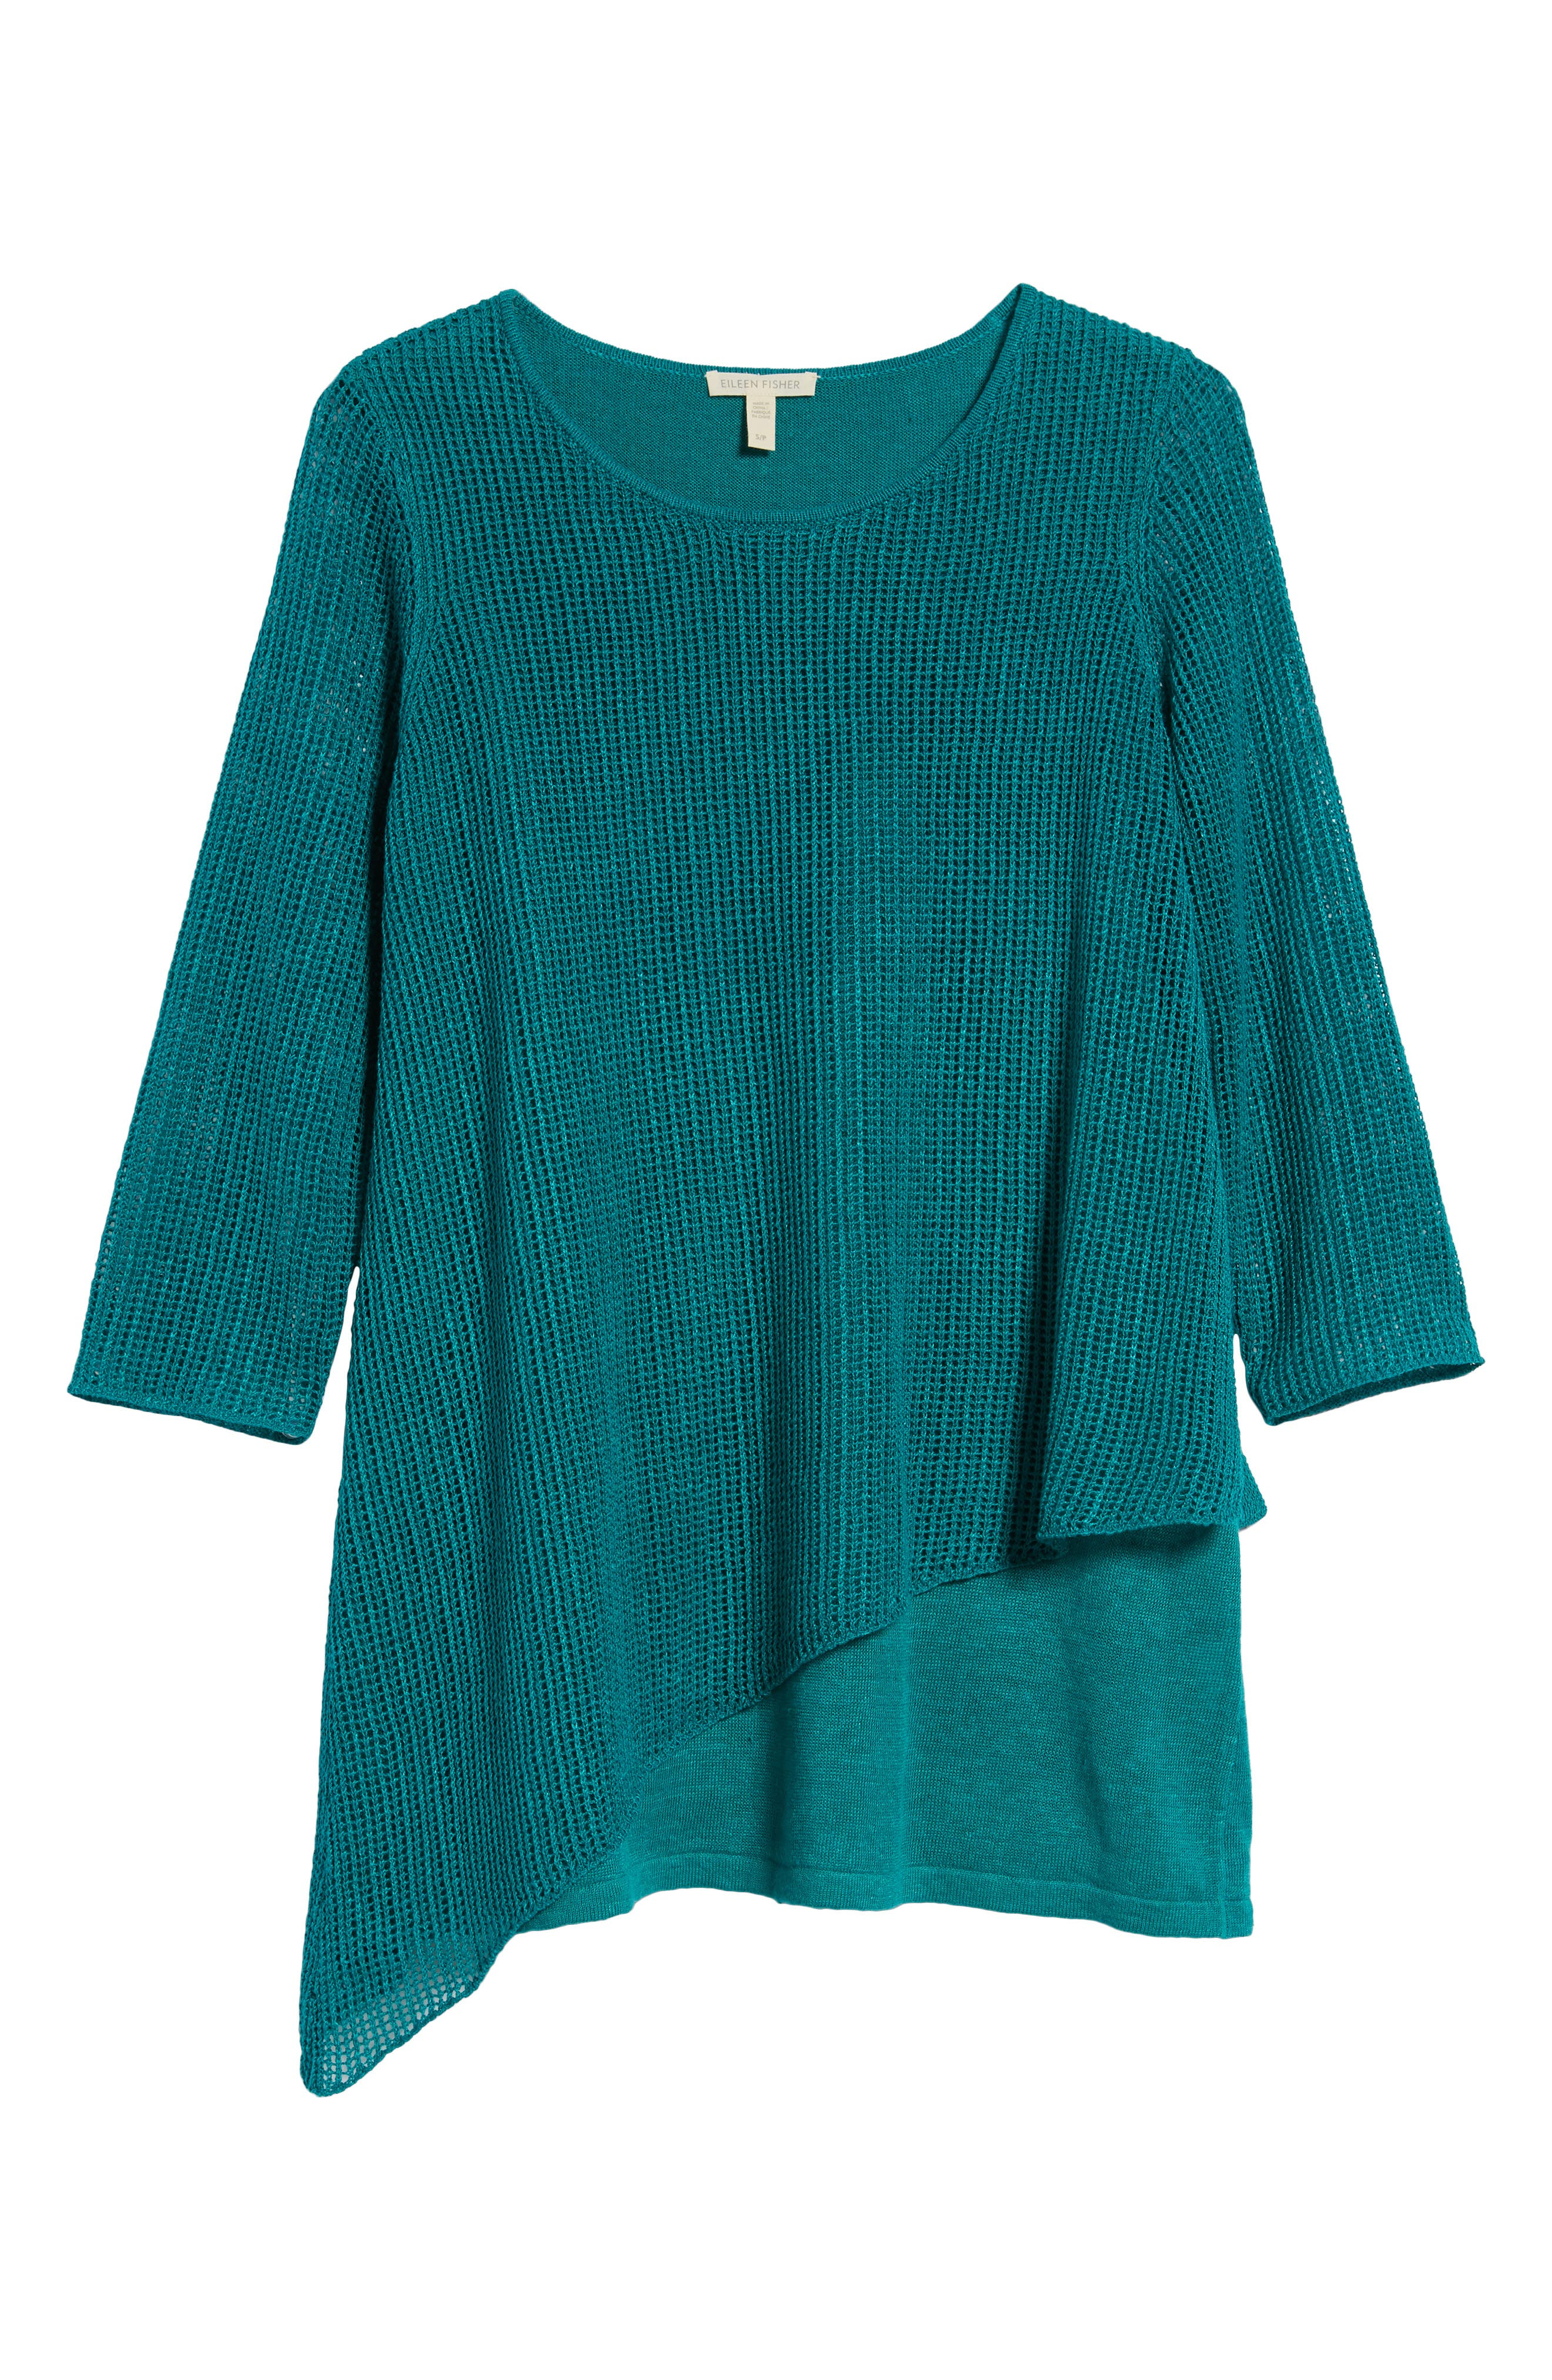 Organic Linen Tunic Sweater,                             Alternate thumbnail 6, color,                             Turquoise